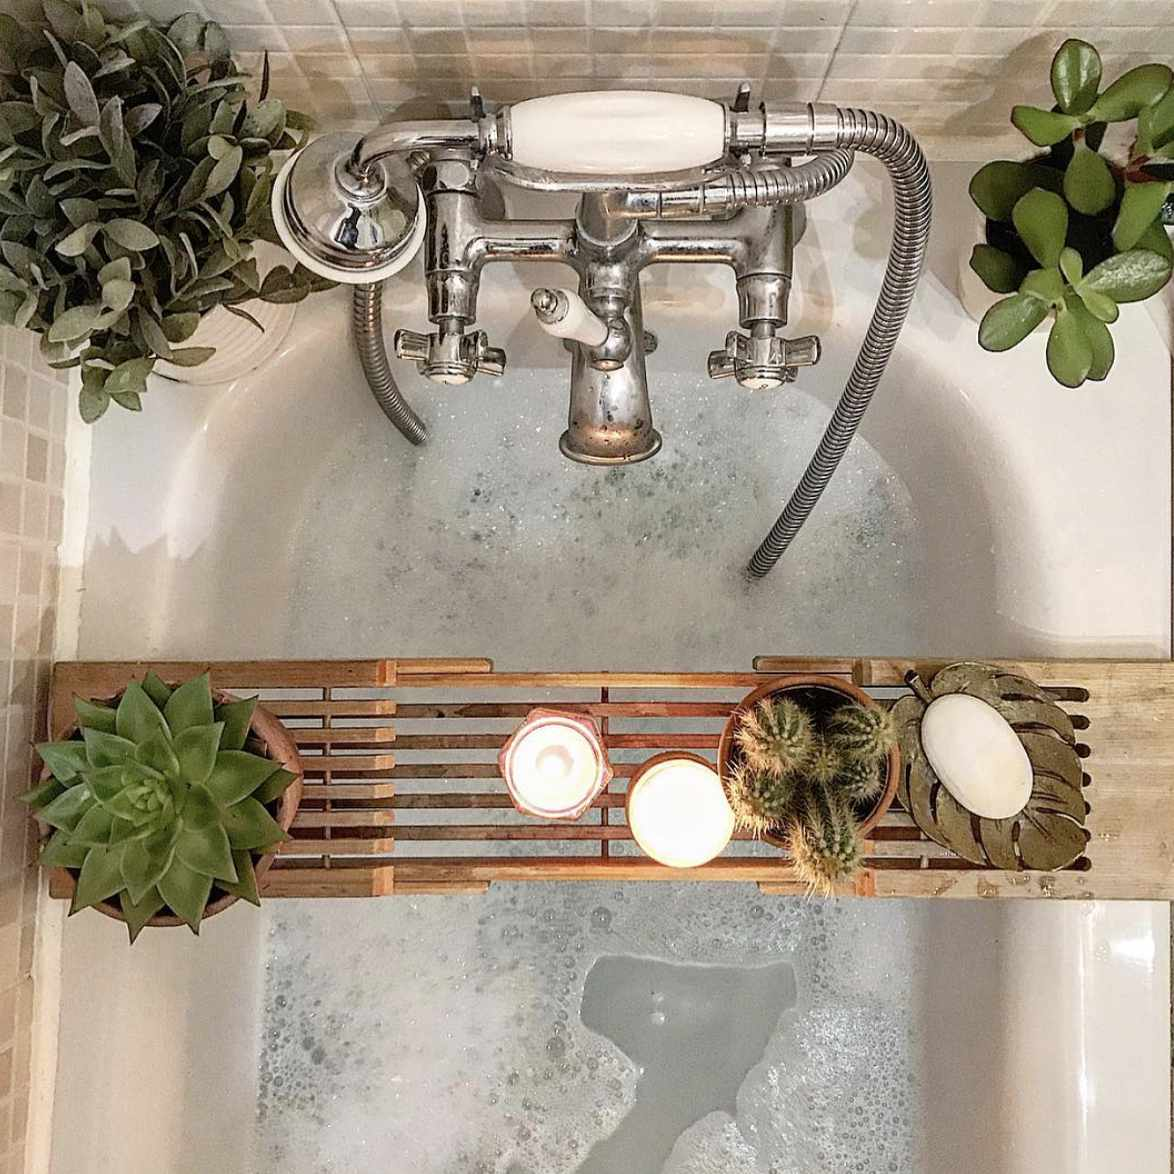 tub with plants